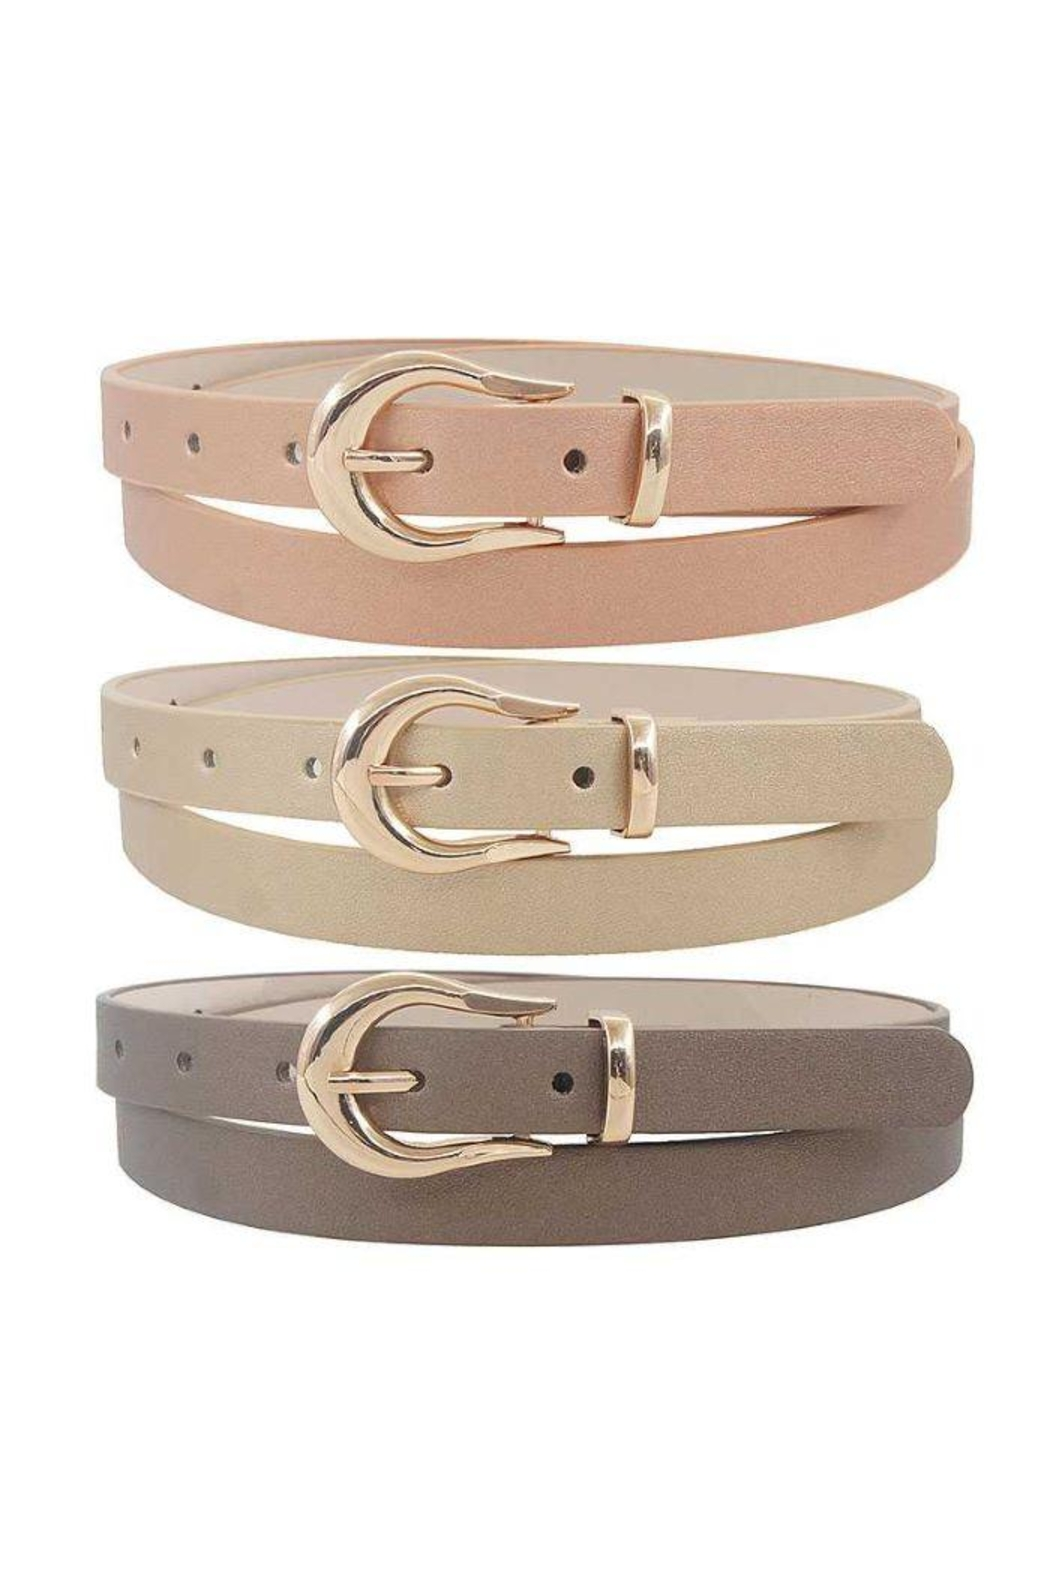 JOIA TRADING INC Skinny Fashion Belt - Front Cropped Image